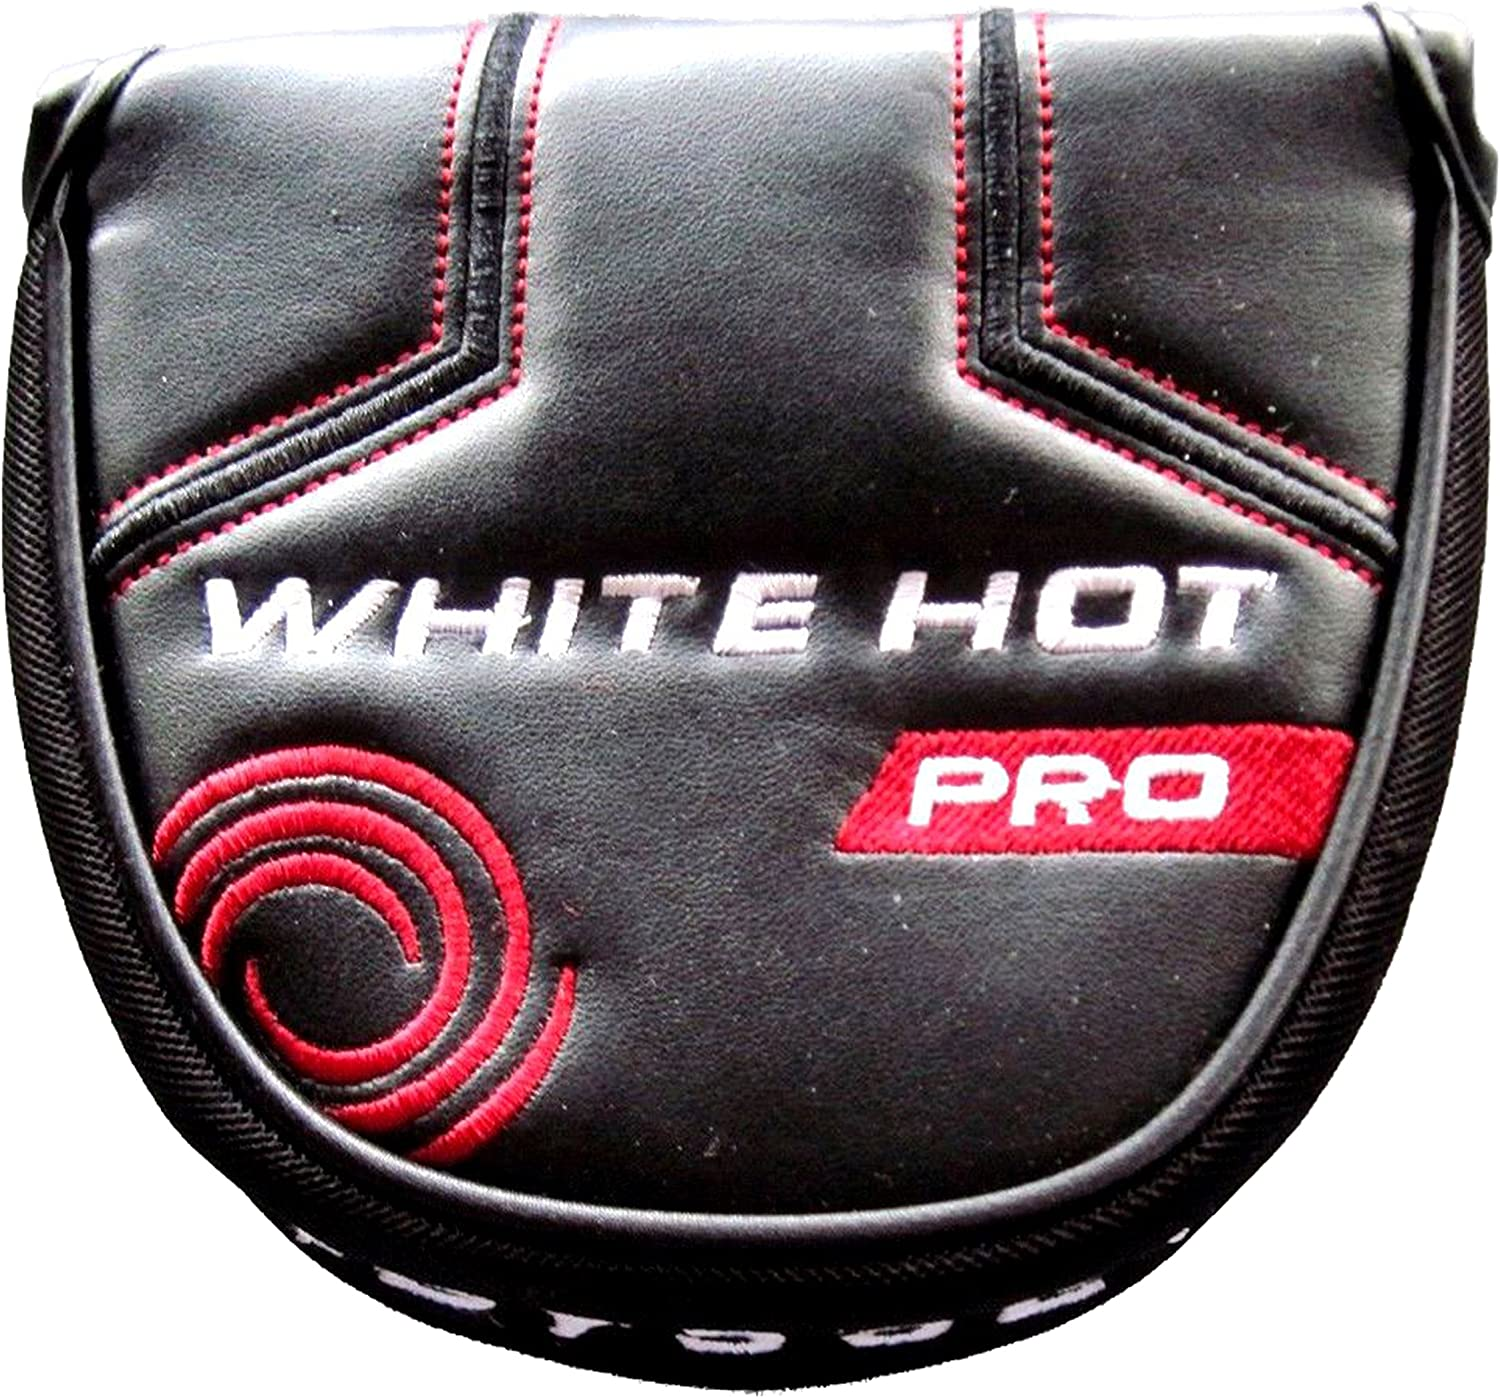 NEW Odyssey White Hot Pro Mallet Putter Cover Headcover : Golf Club Head Covers : Sports & Outdoors